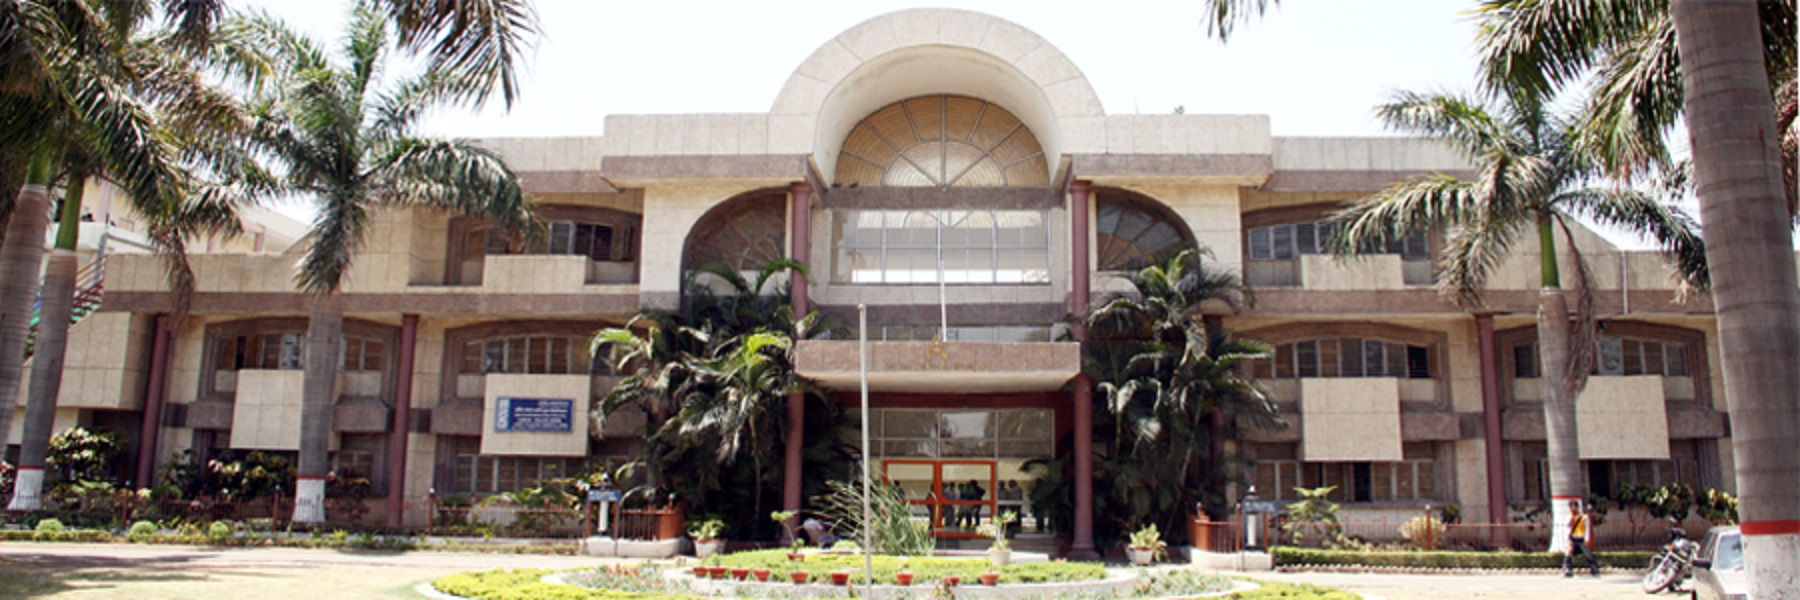 Career College, Bhopal Image